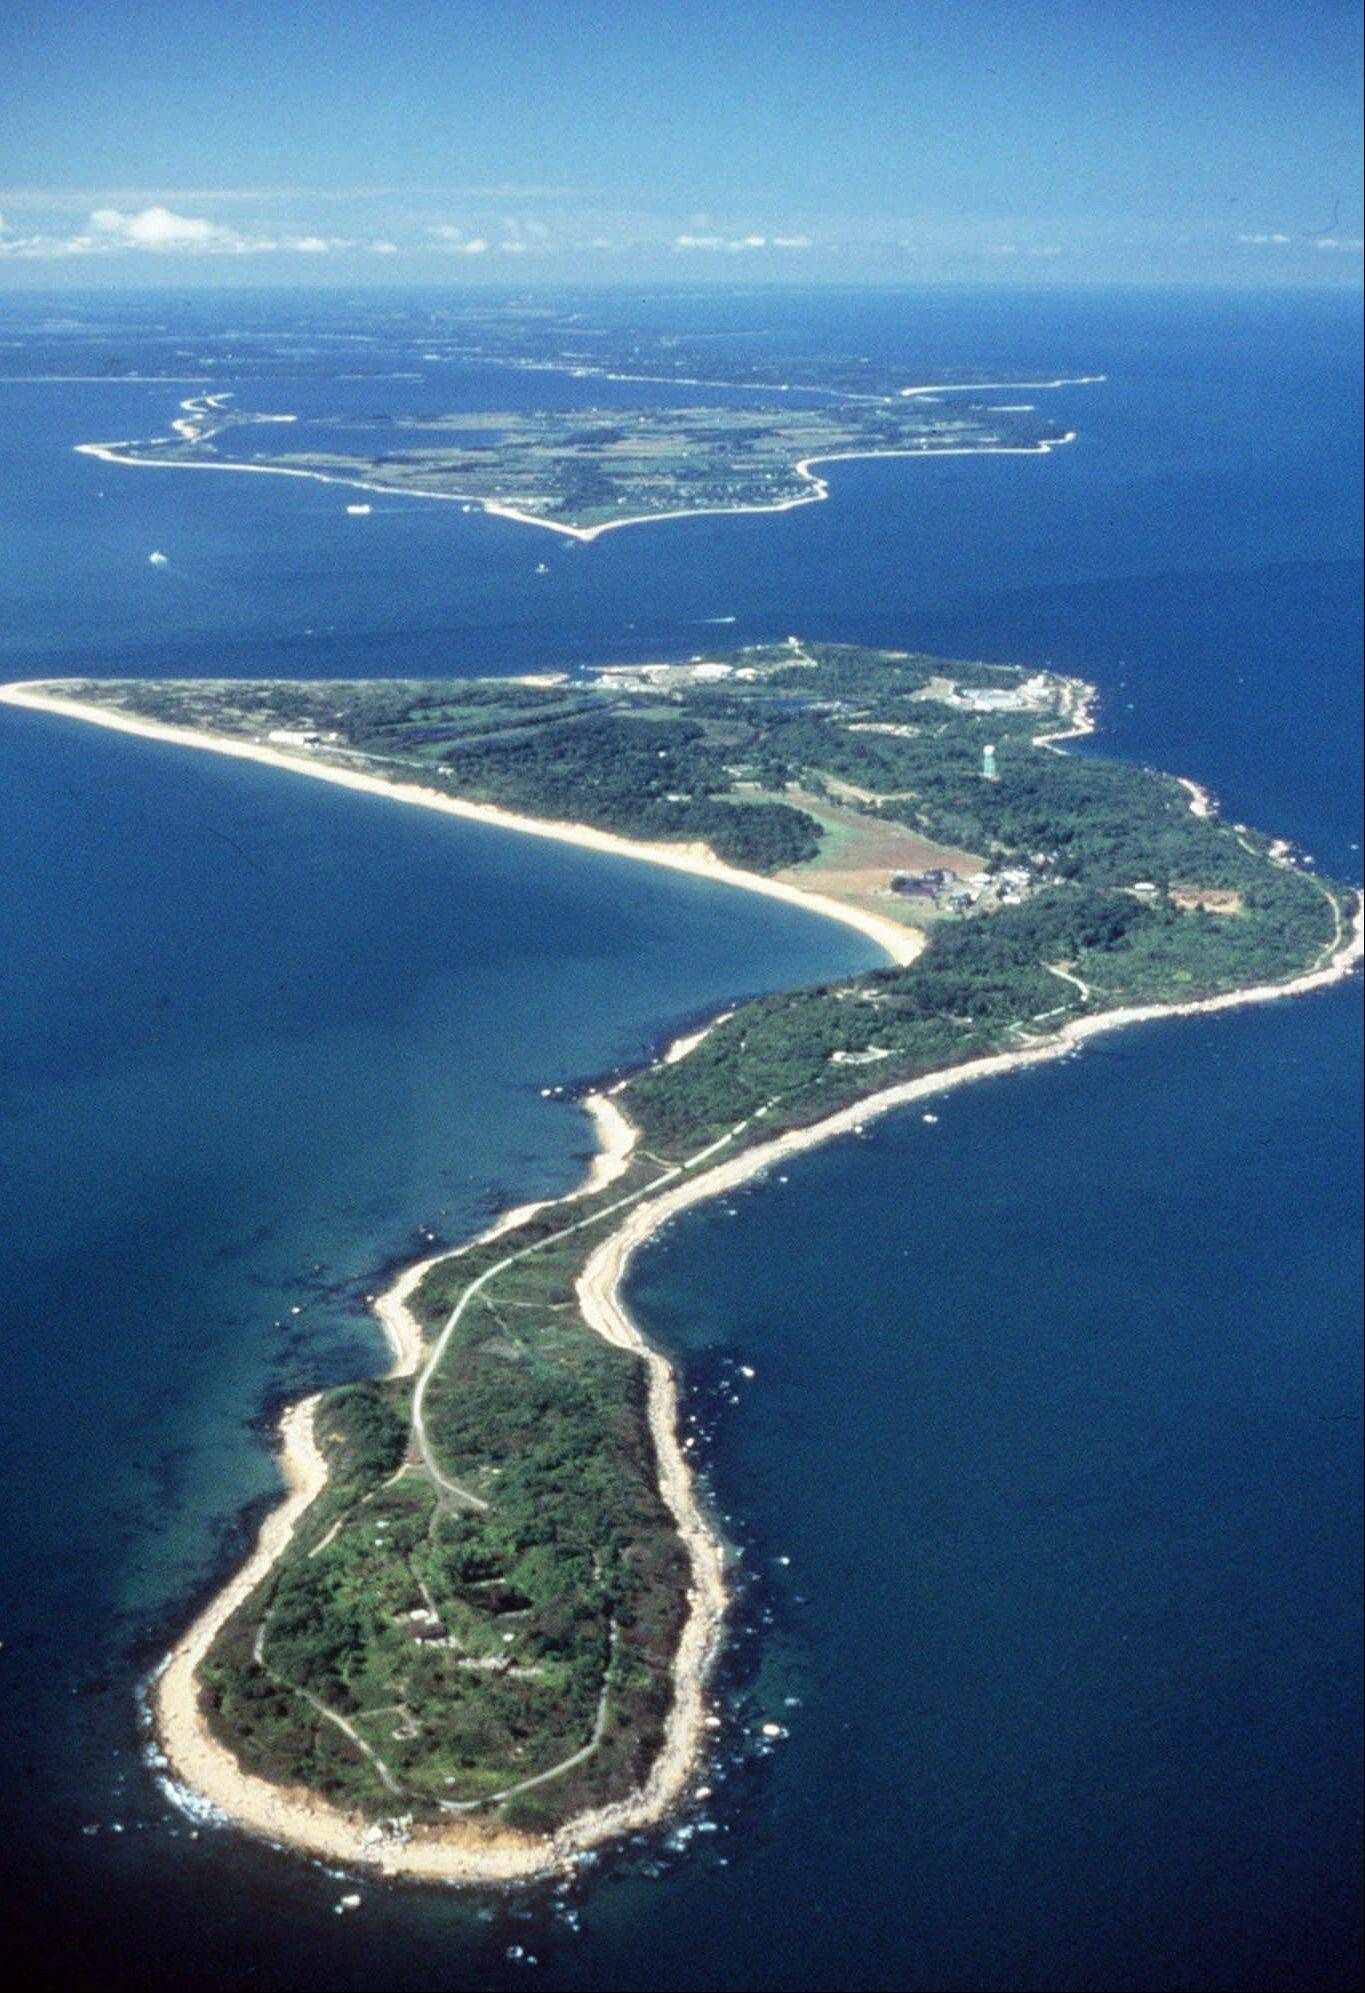 Plum Island is seen from the air in the waters off the northern shore of New York's Long Island. A GSA environmental study in June suggested homes might be built on the island. Environmental groups want it to become a nature preserve. Some members of Congress want to stop the sale of the island 100 miles east of New York City.